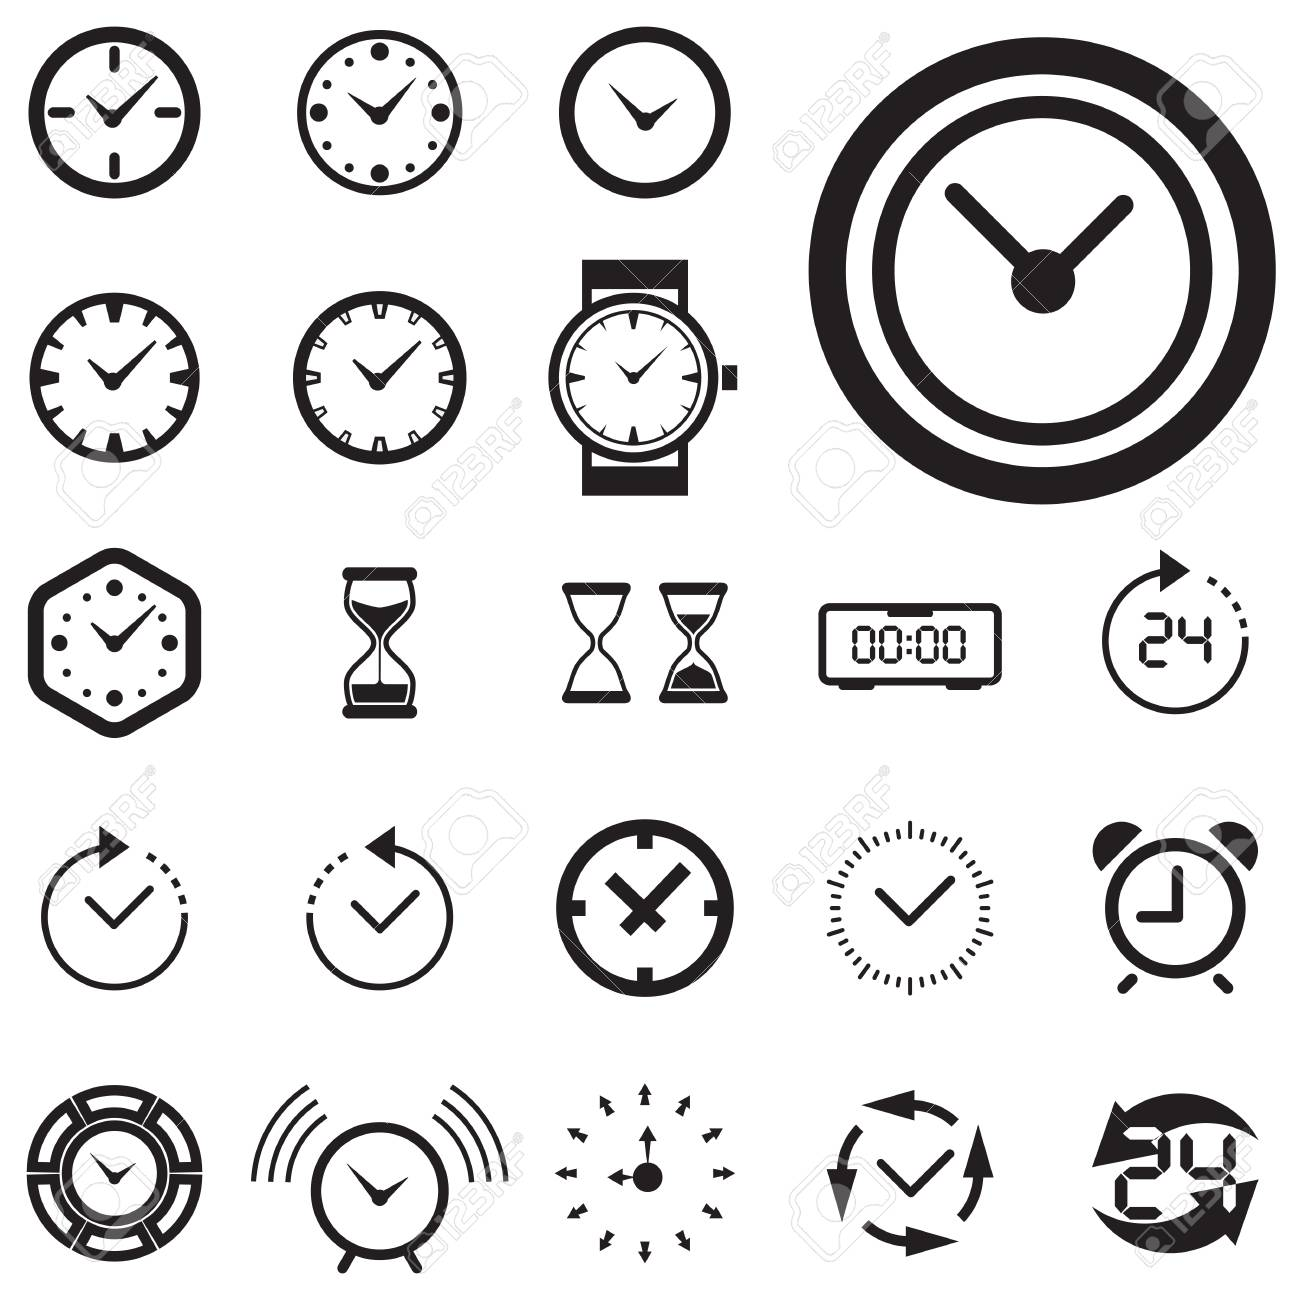 Clock Icon Isolated. Time Logo, Template, Pictogram. Trendy Watch ...